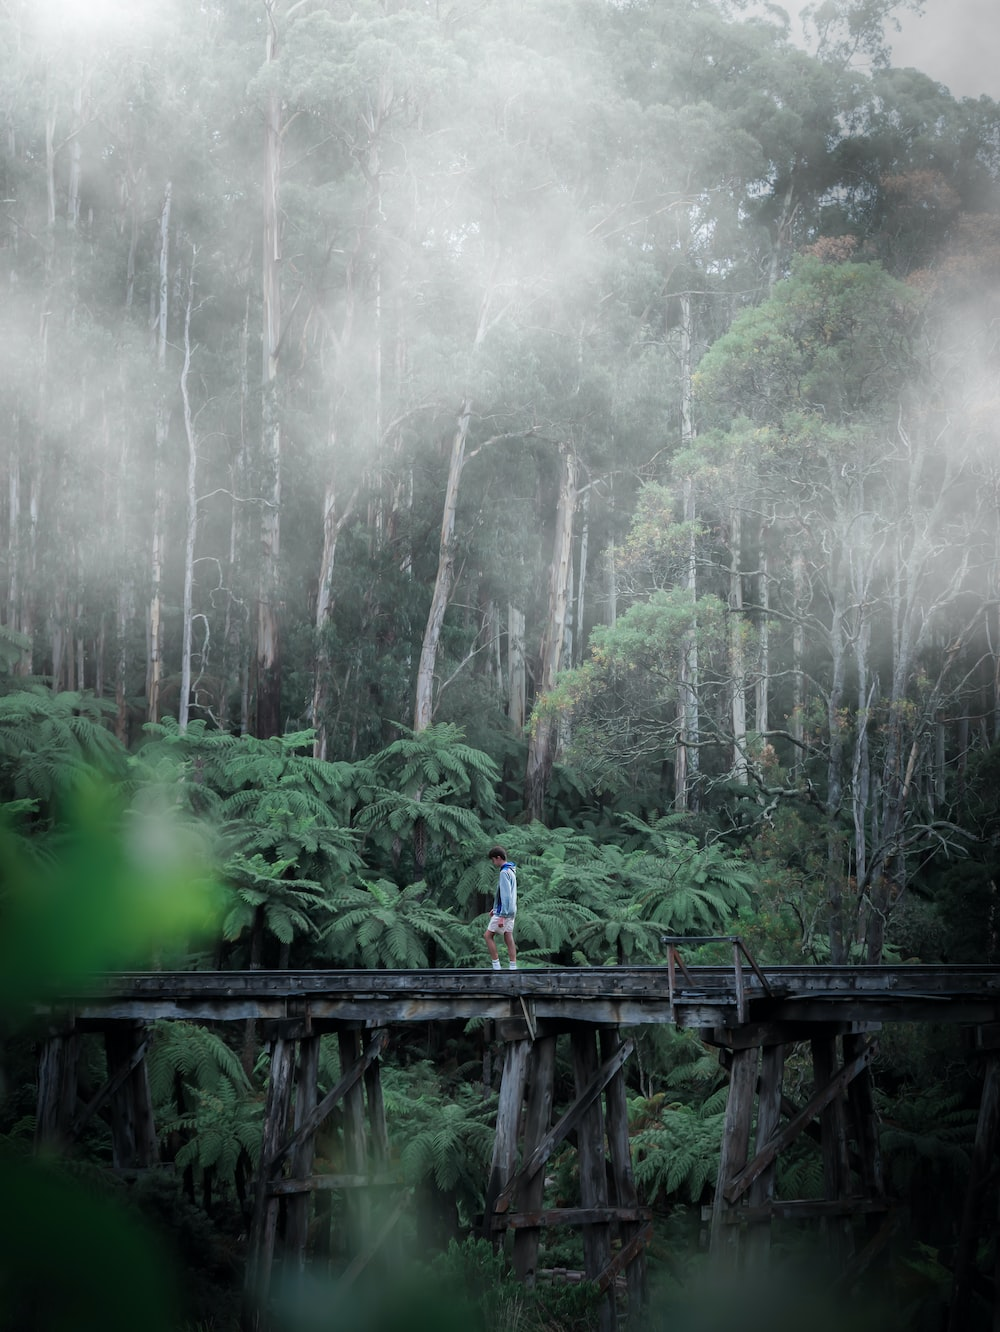 people walking on wooden bridge over green trees during daytime